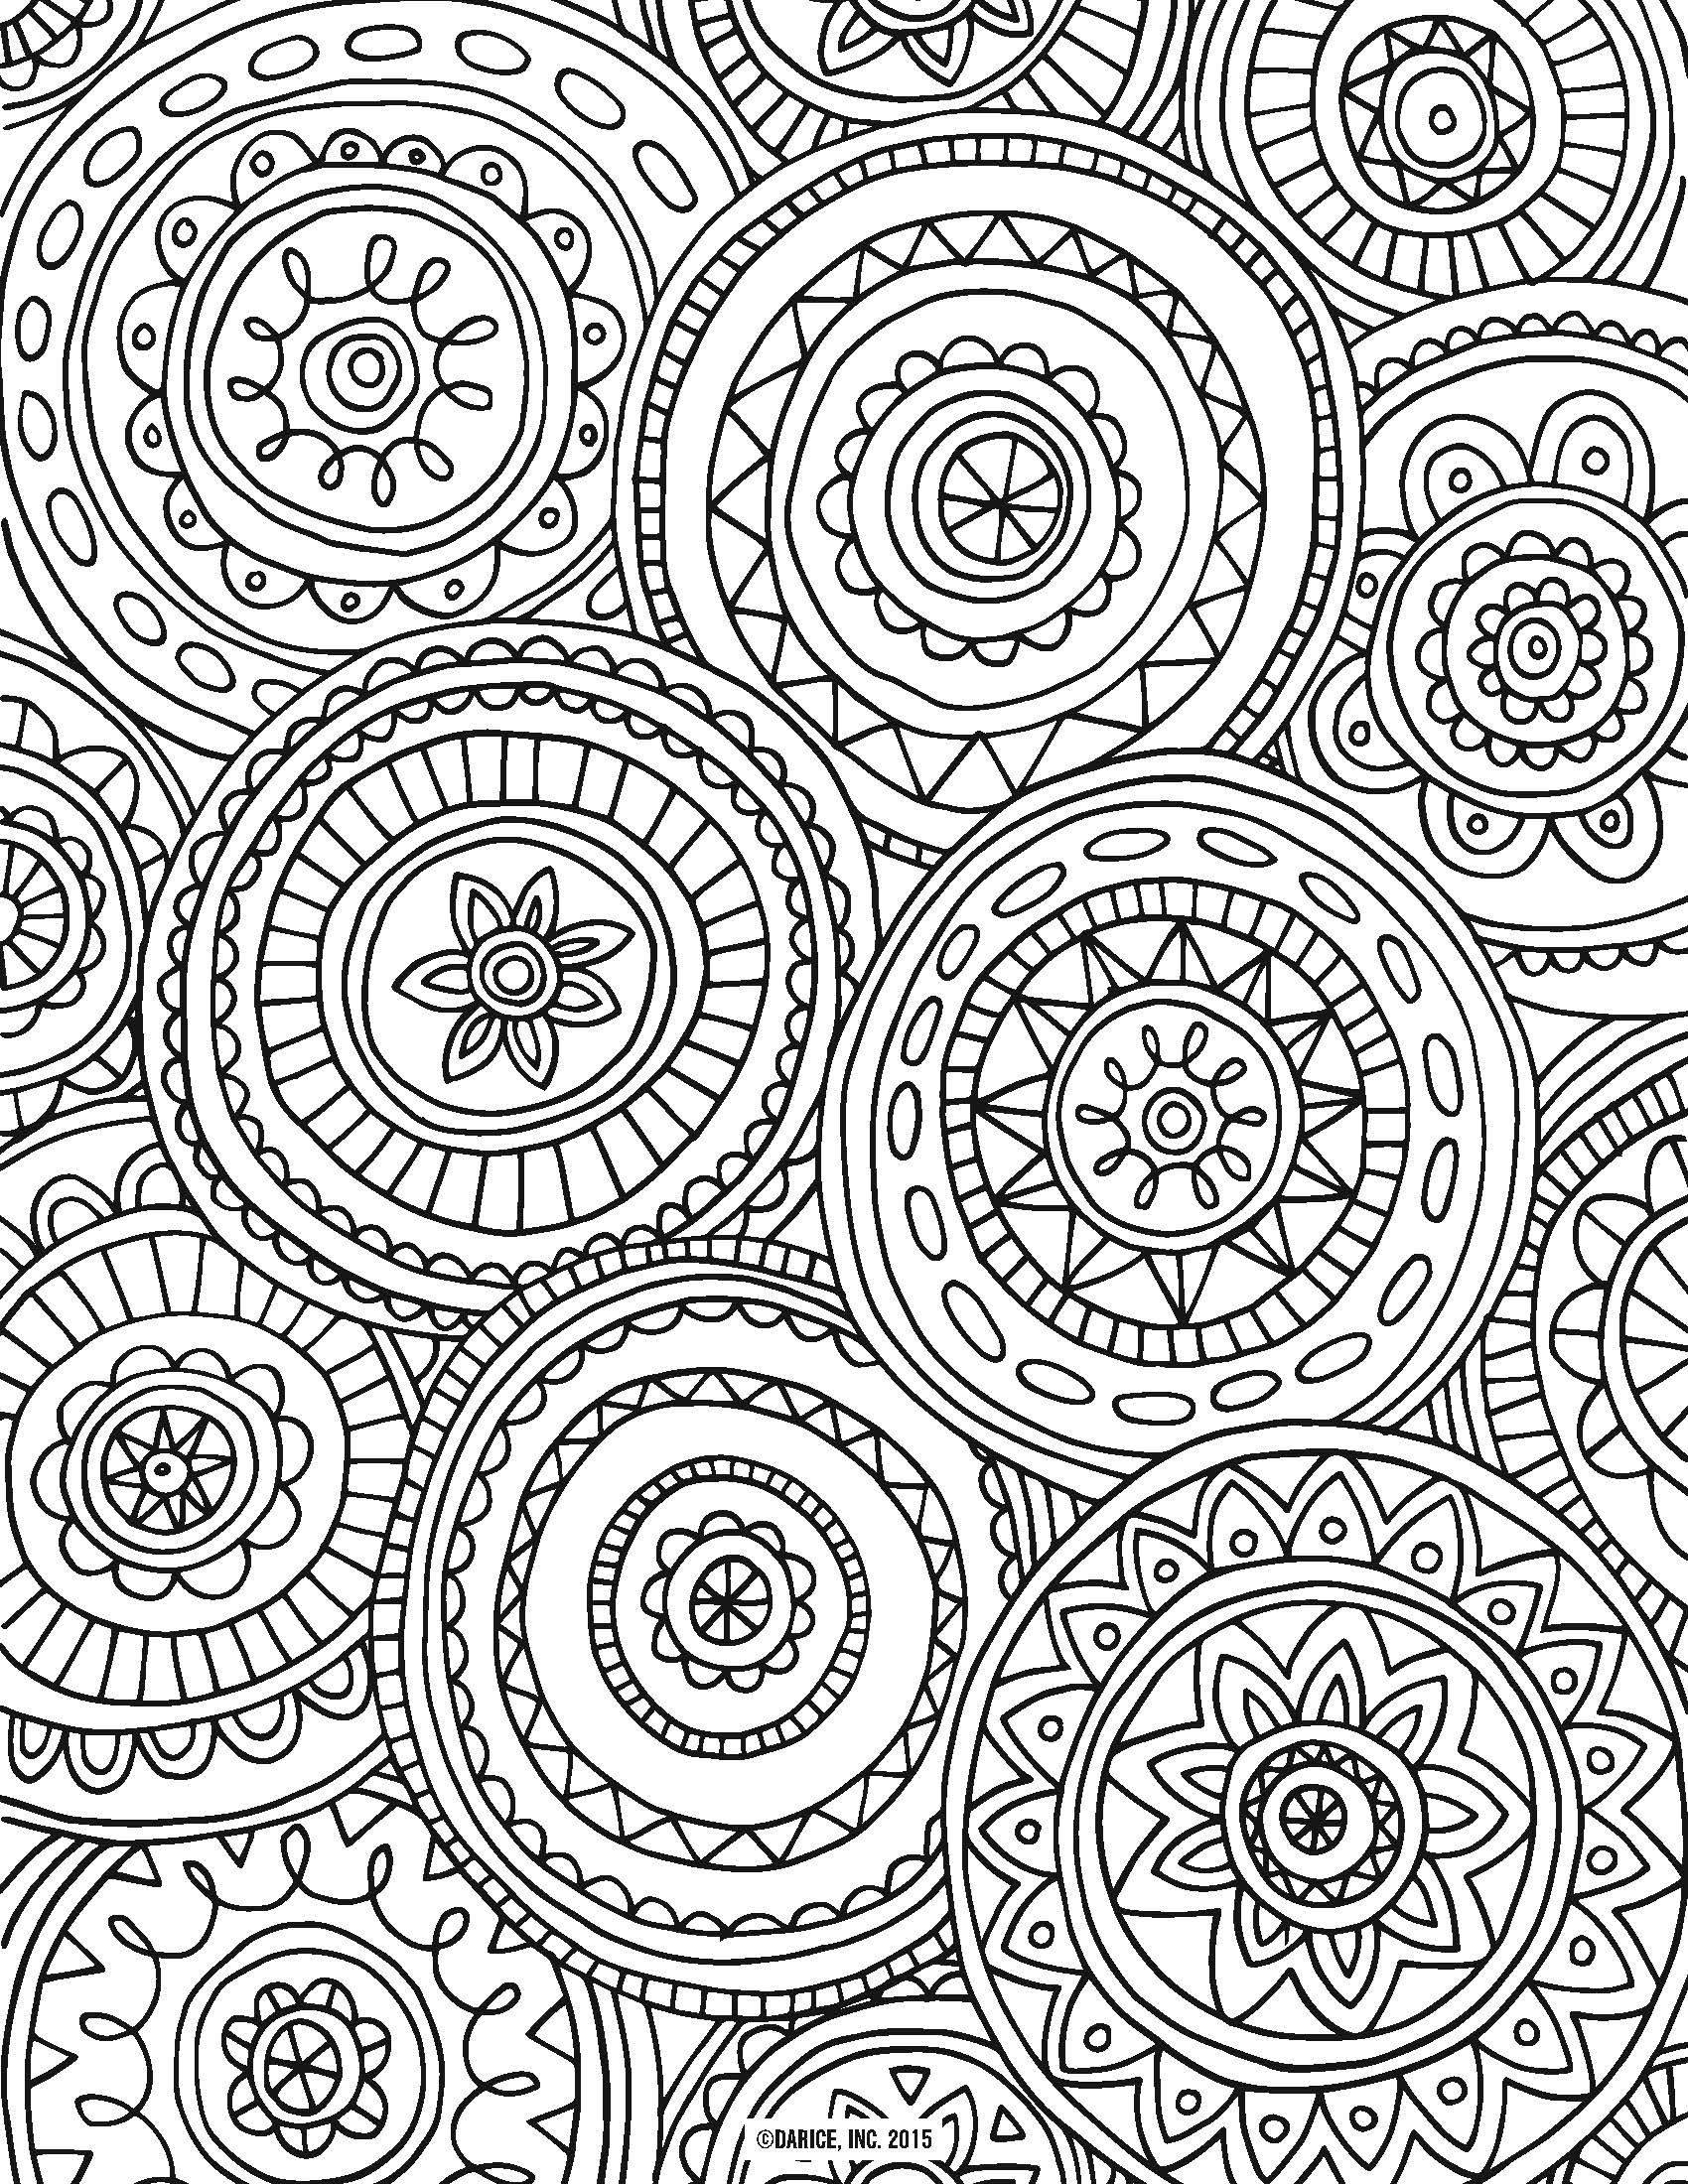 coloring pages to color online for free for adults - adult coloring page